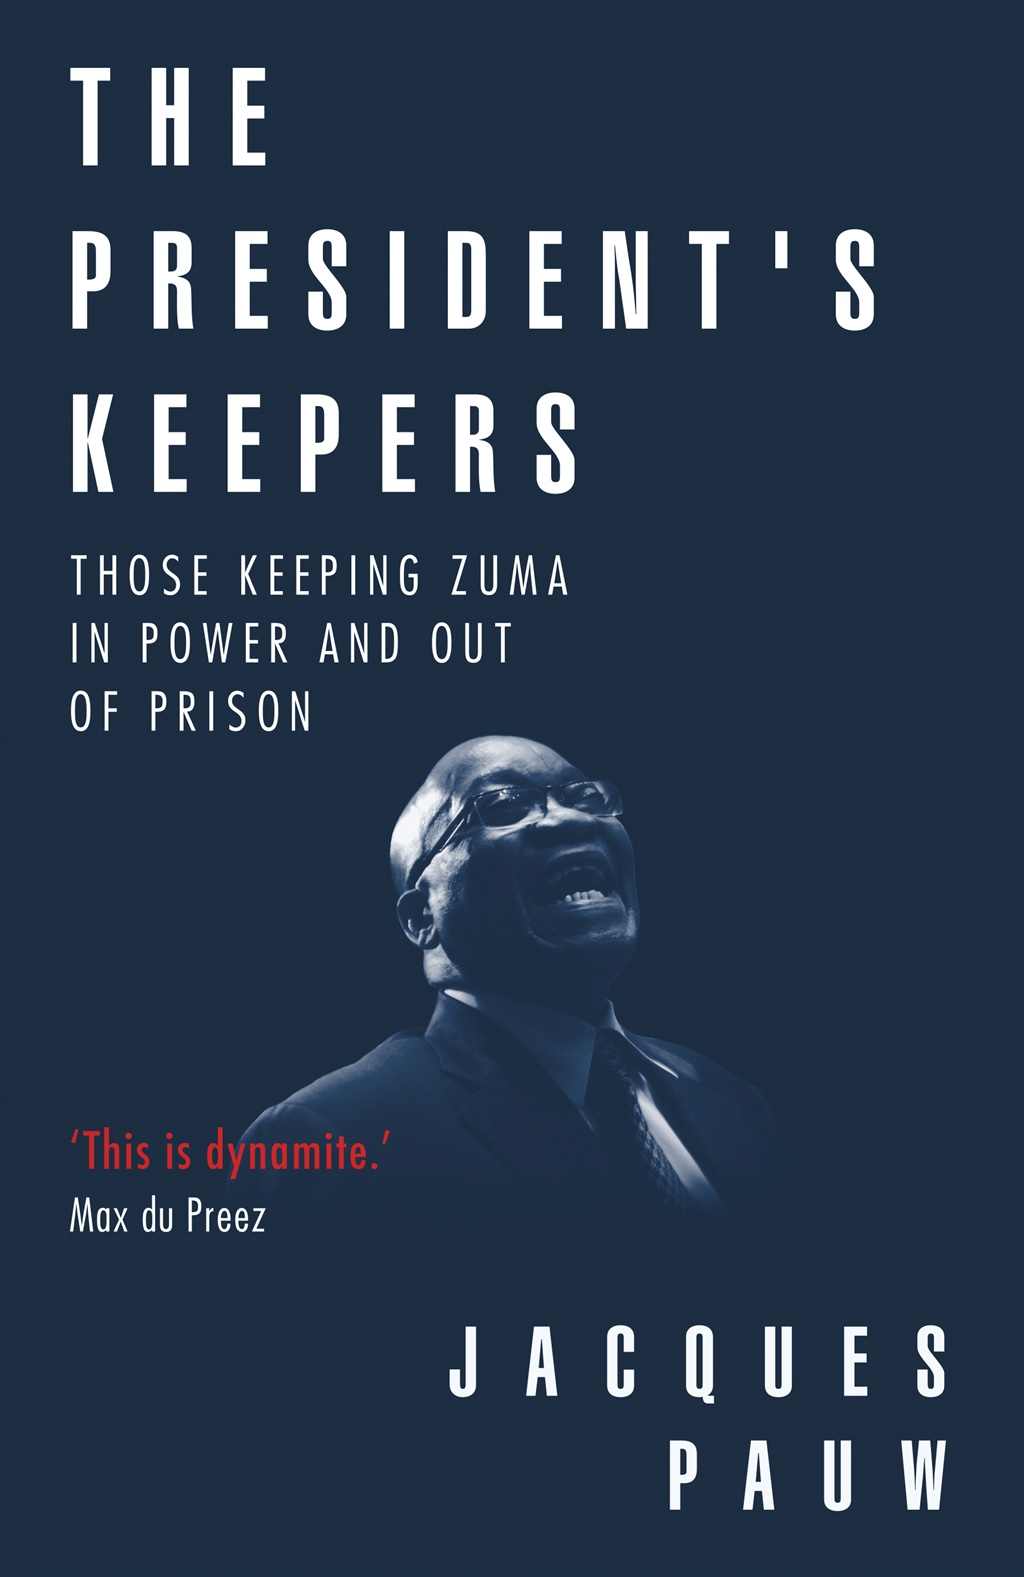 The President's Keepers (Publisher: Tafelberg)